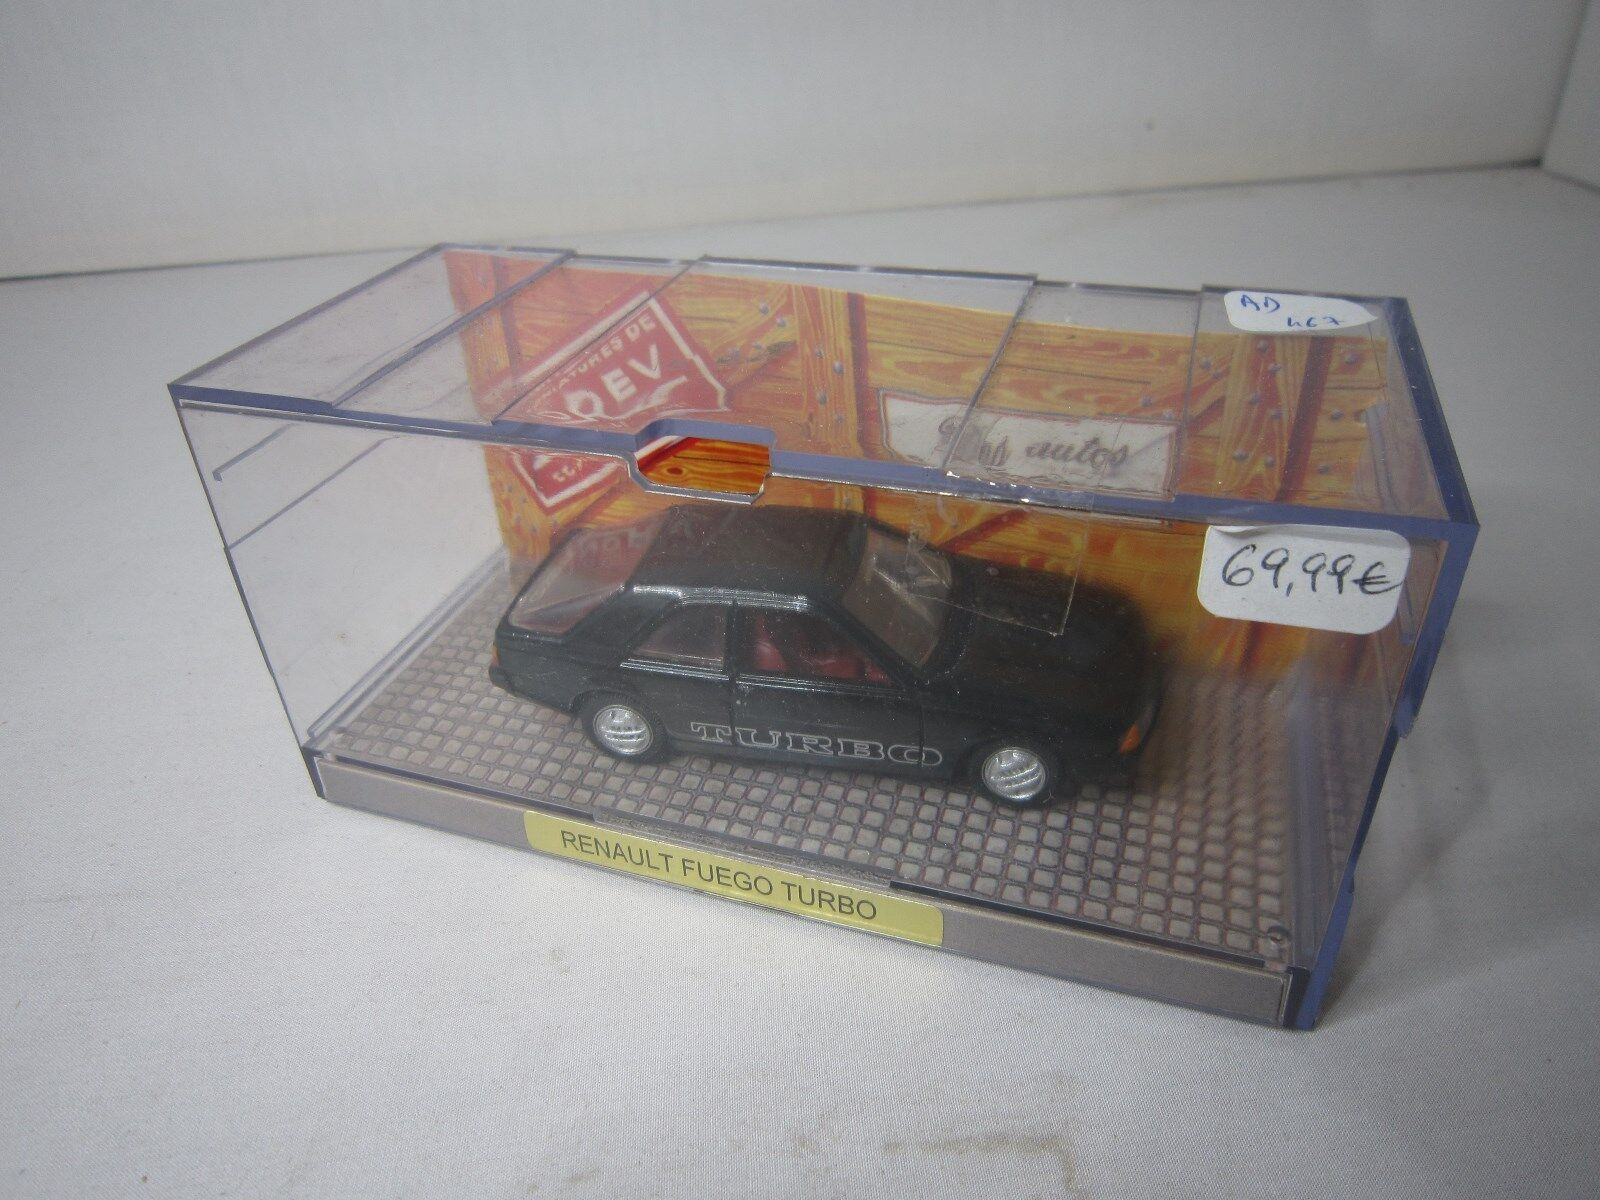 AD467 NOREV 1 43 RENAULT FUEGO TURBO DES AUTOS A COLLECTIONNER MINIATURES